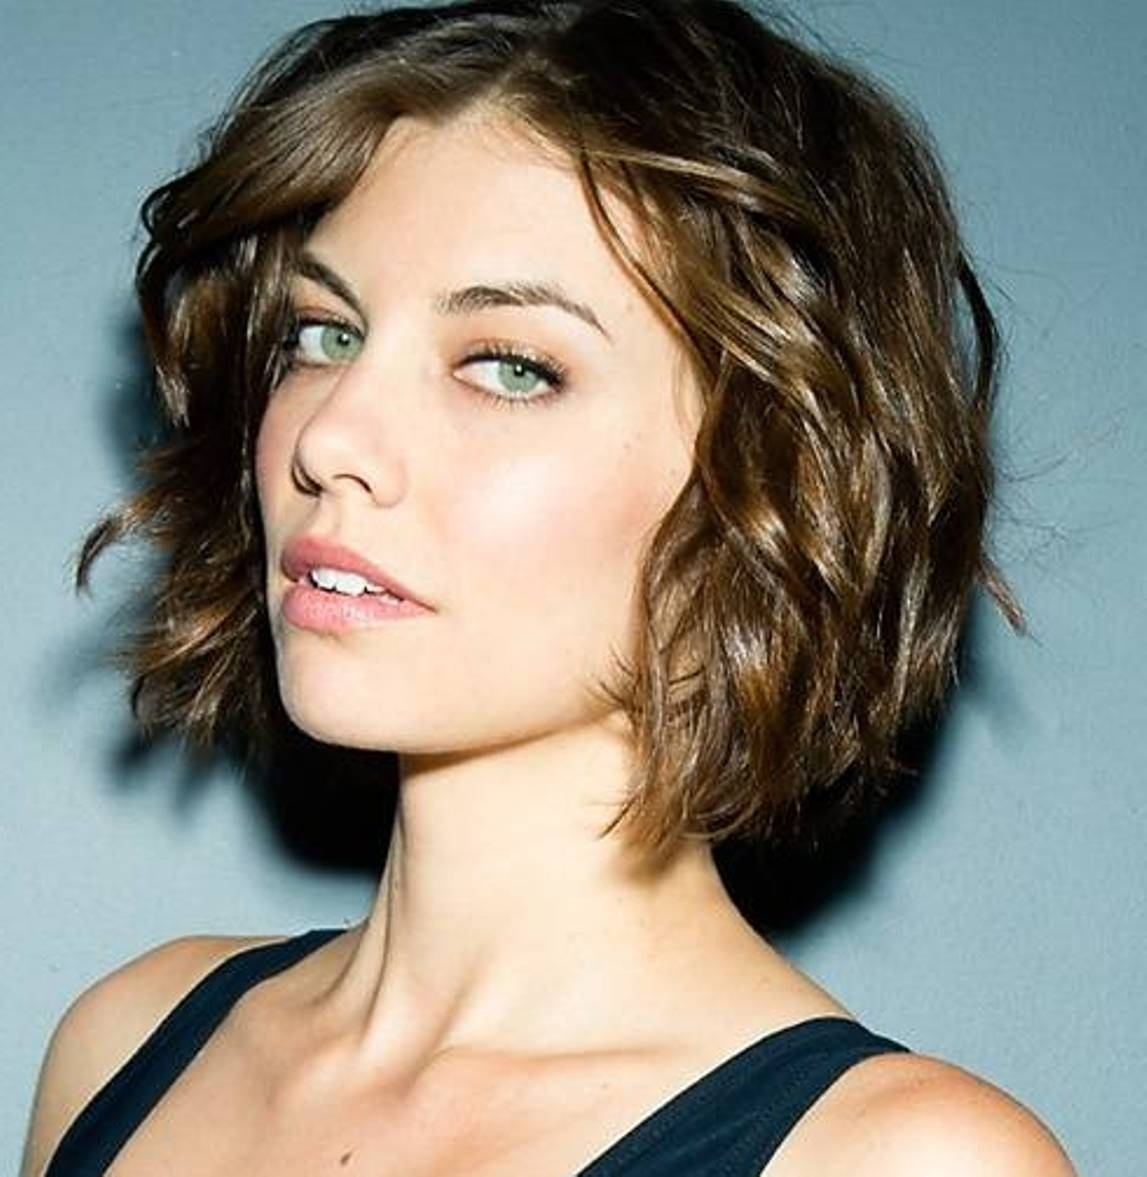 15 Best And Coolest Short Wavy Hairstyles Ever - Haircuts regarding Easy Short Haircut For Wavy Hair